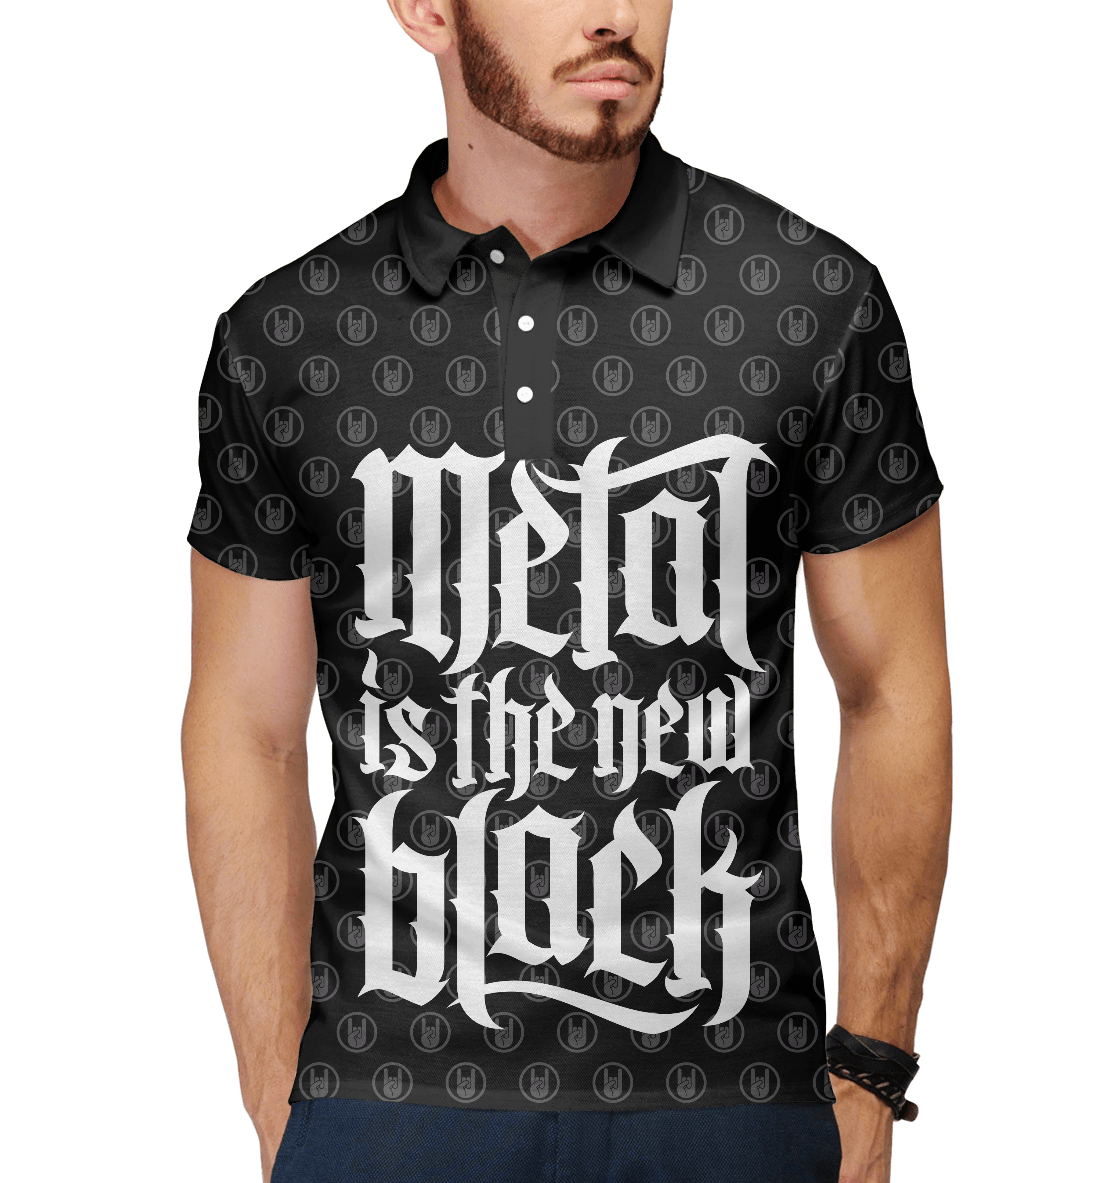 Metal is the new Black